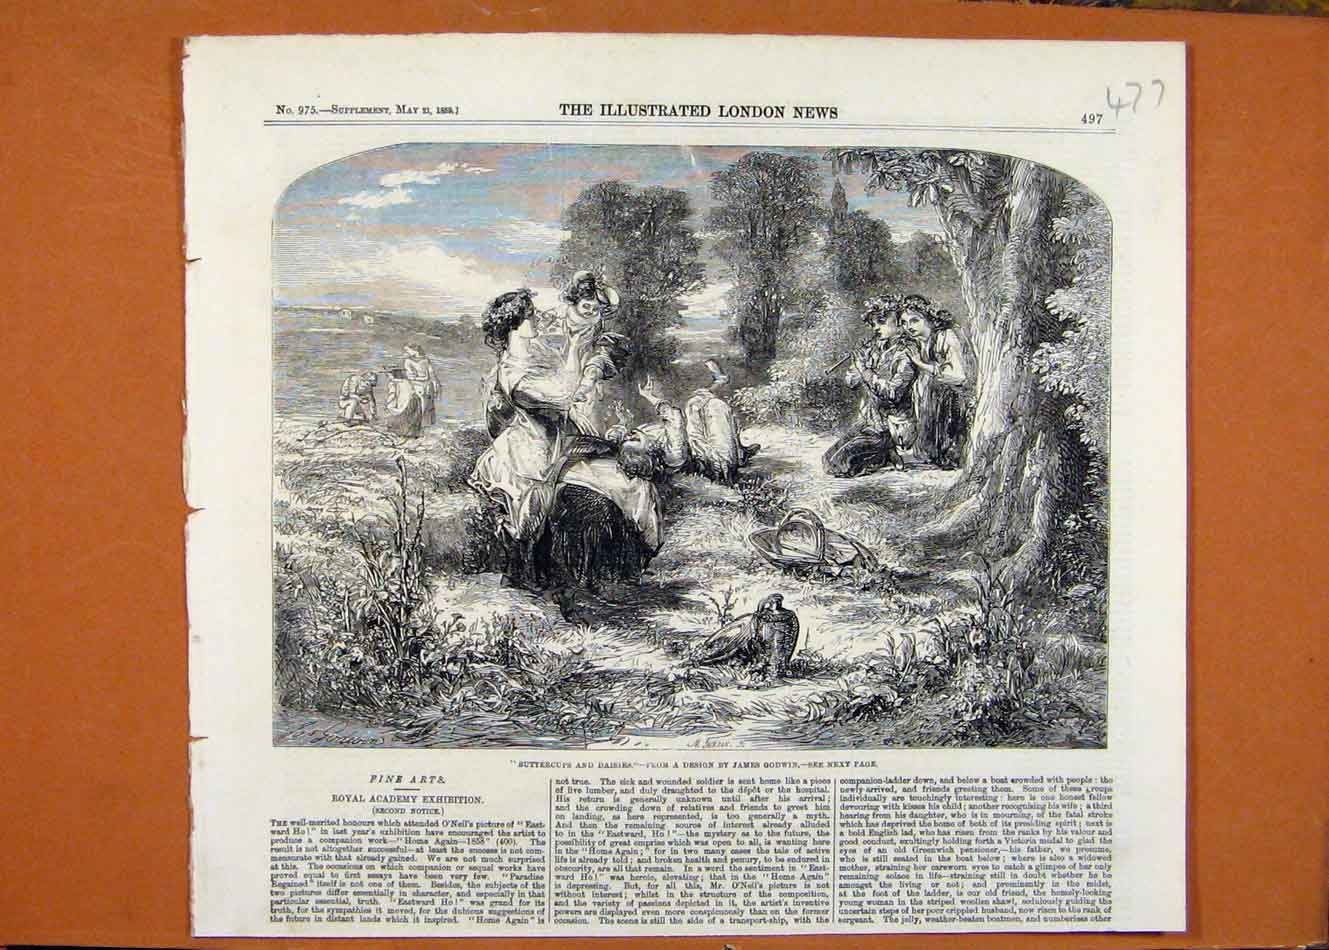 Print Buttercups And Daisies James Godwin C1859 London News 778260 Old Original